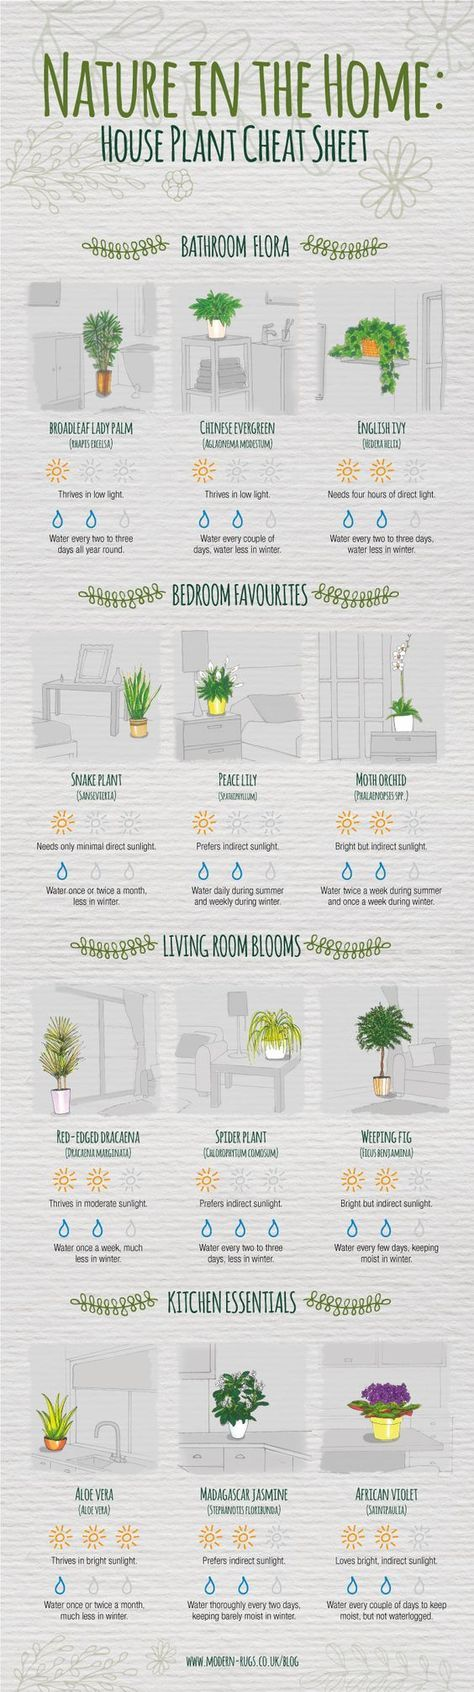 Photo of Indoor Plants Cheat Sheet #Infographic